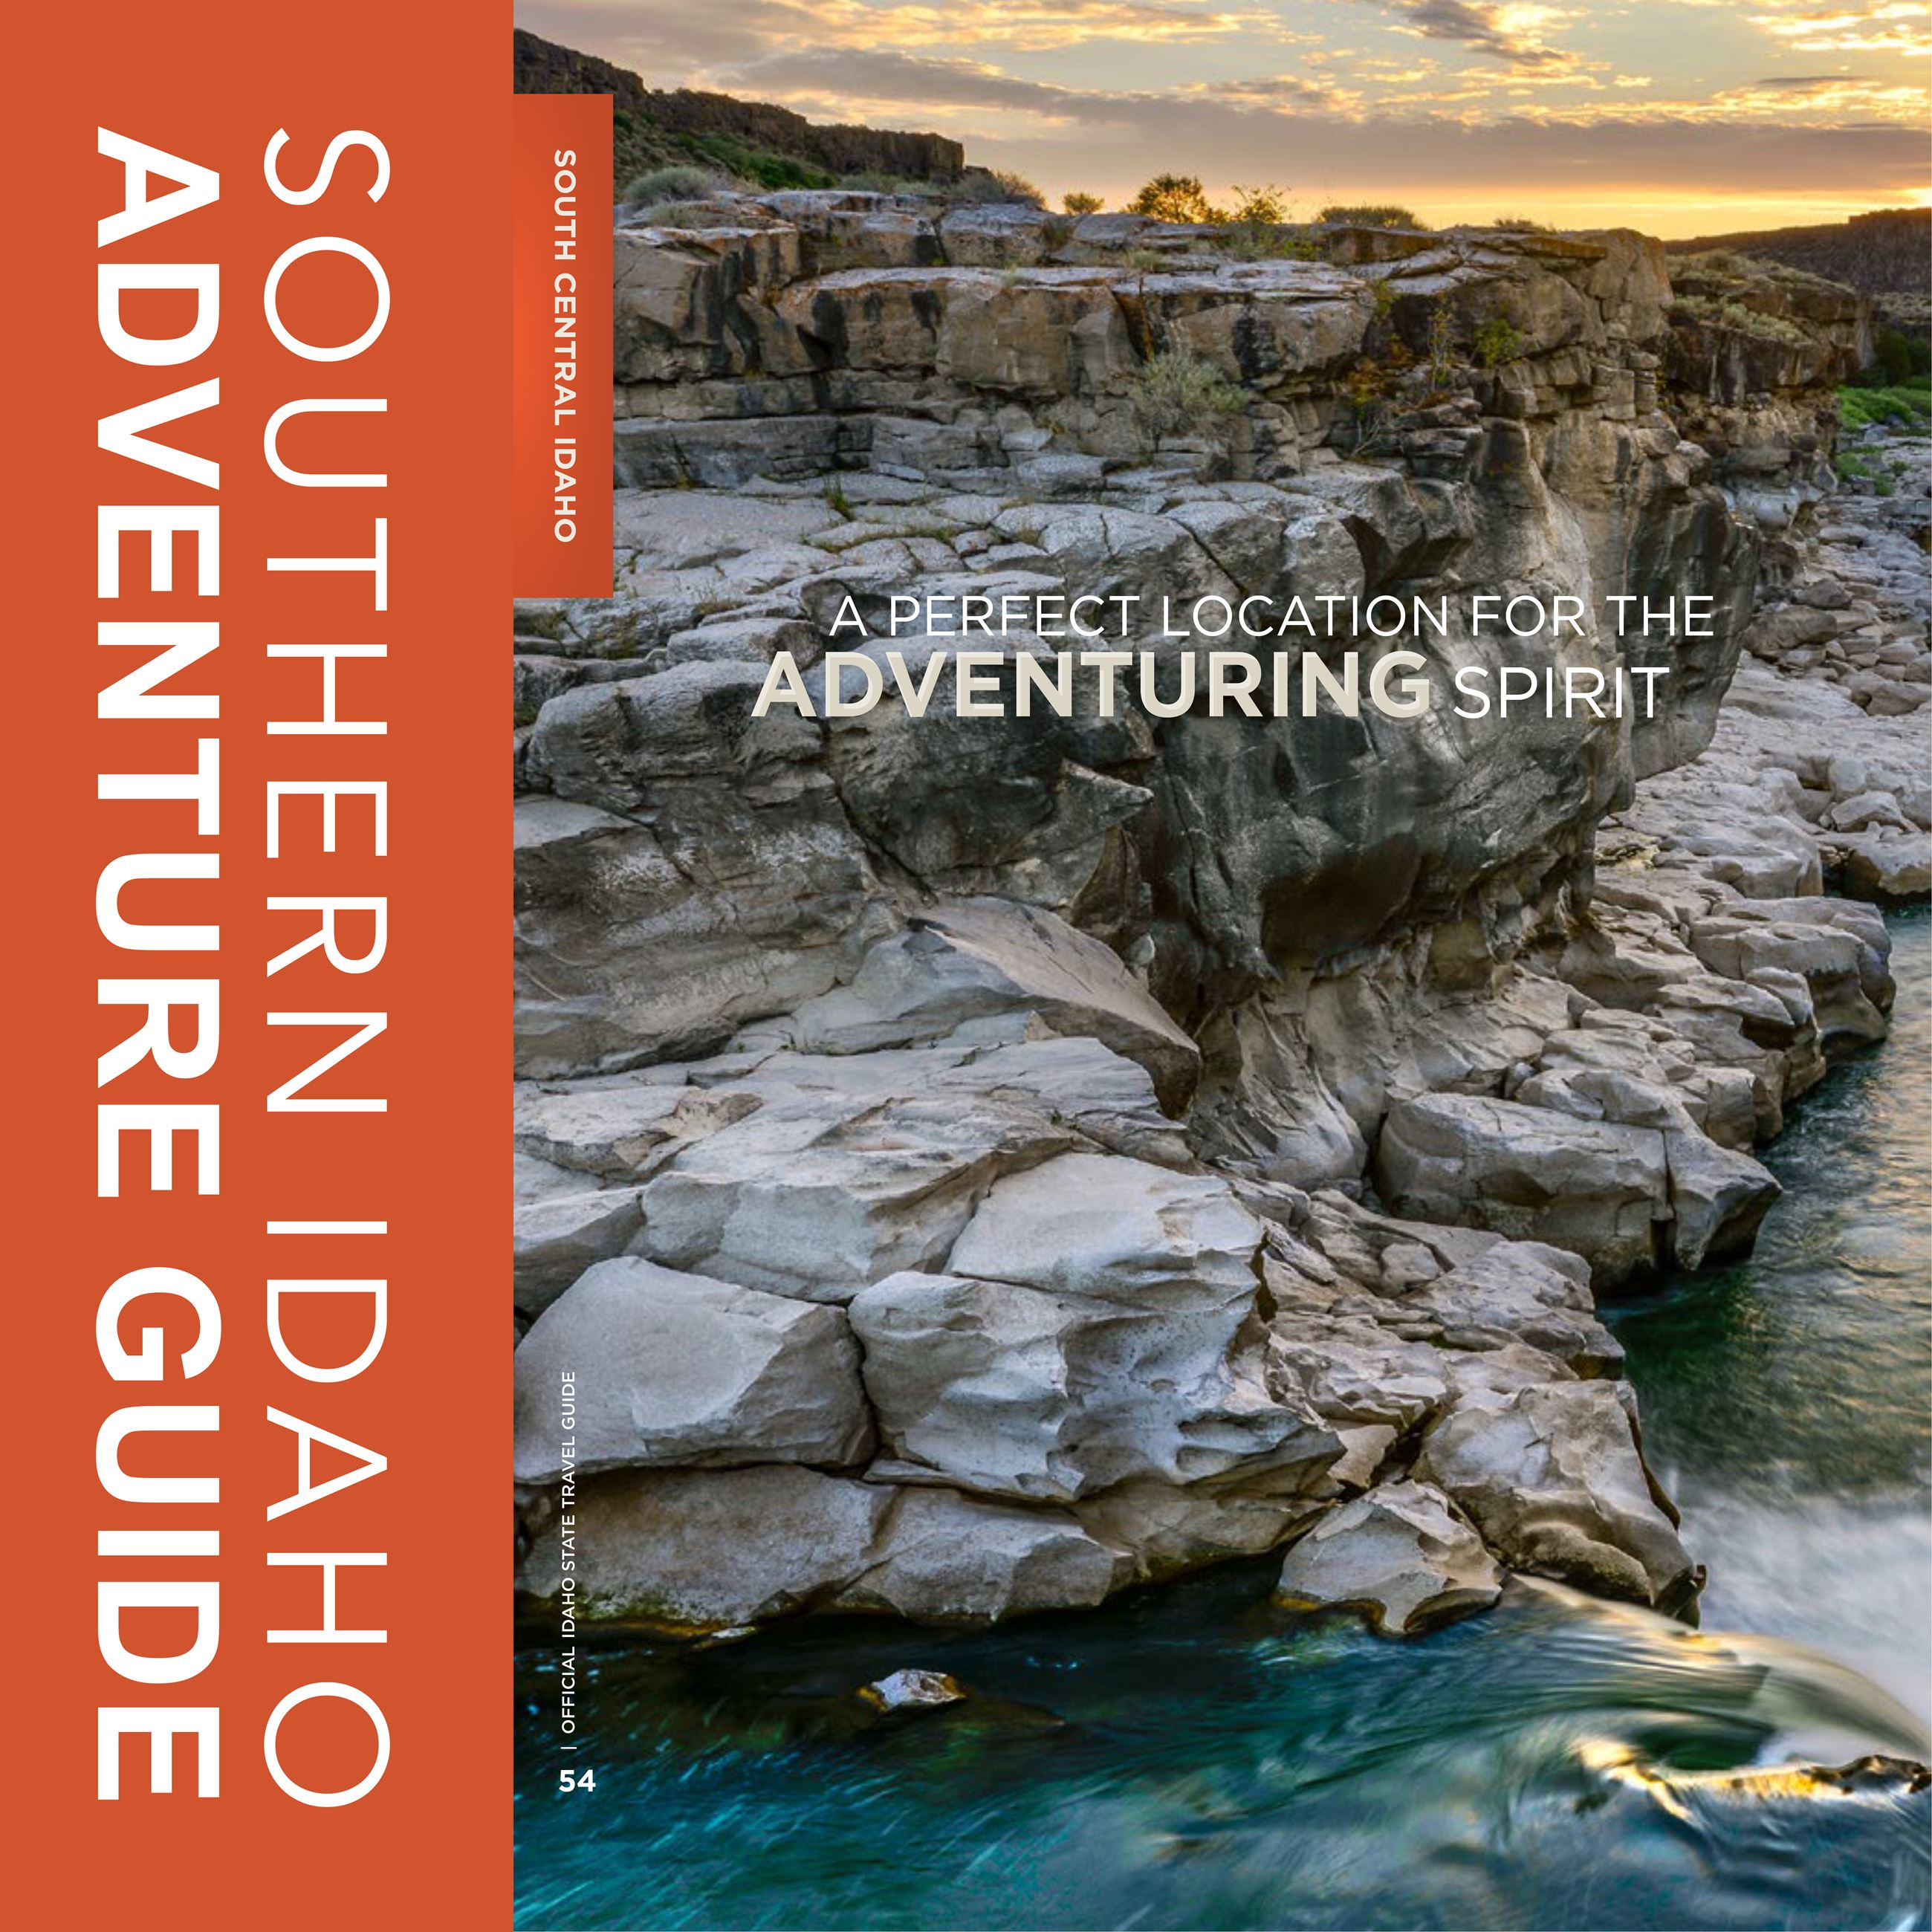 Southern Idaho Adventure Guide